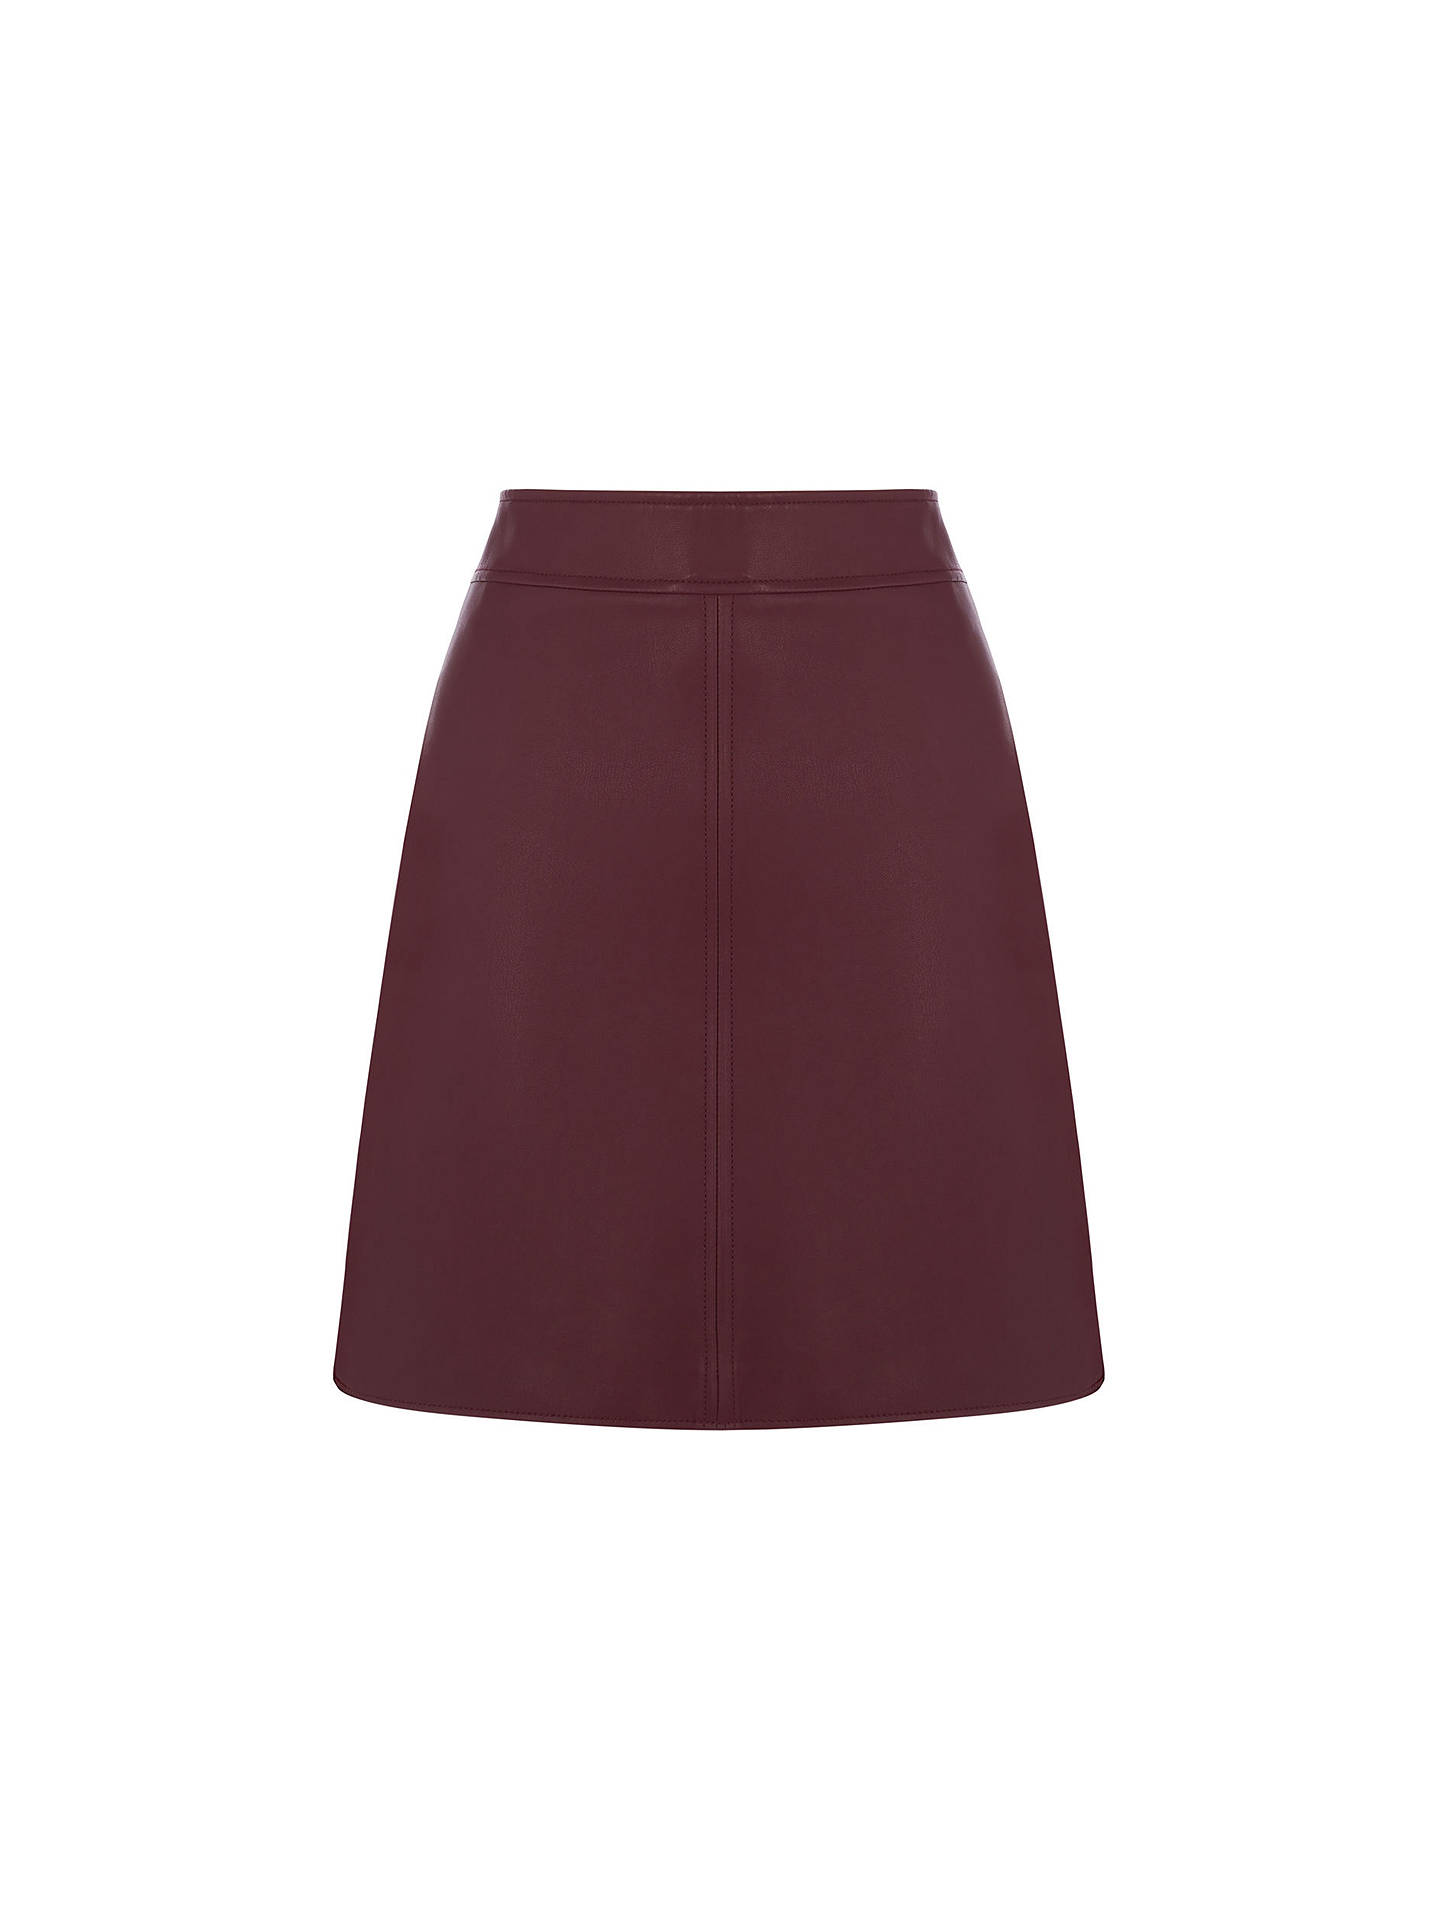 662158c0b2c6 Warehouse Dark Red Faux Leather Skirt